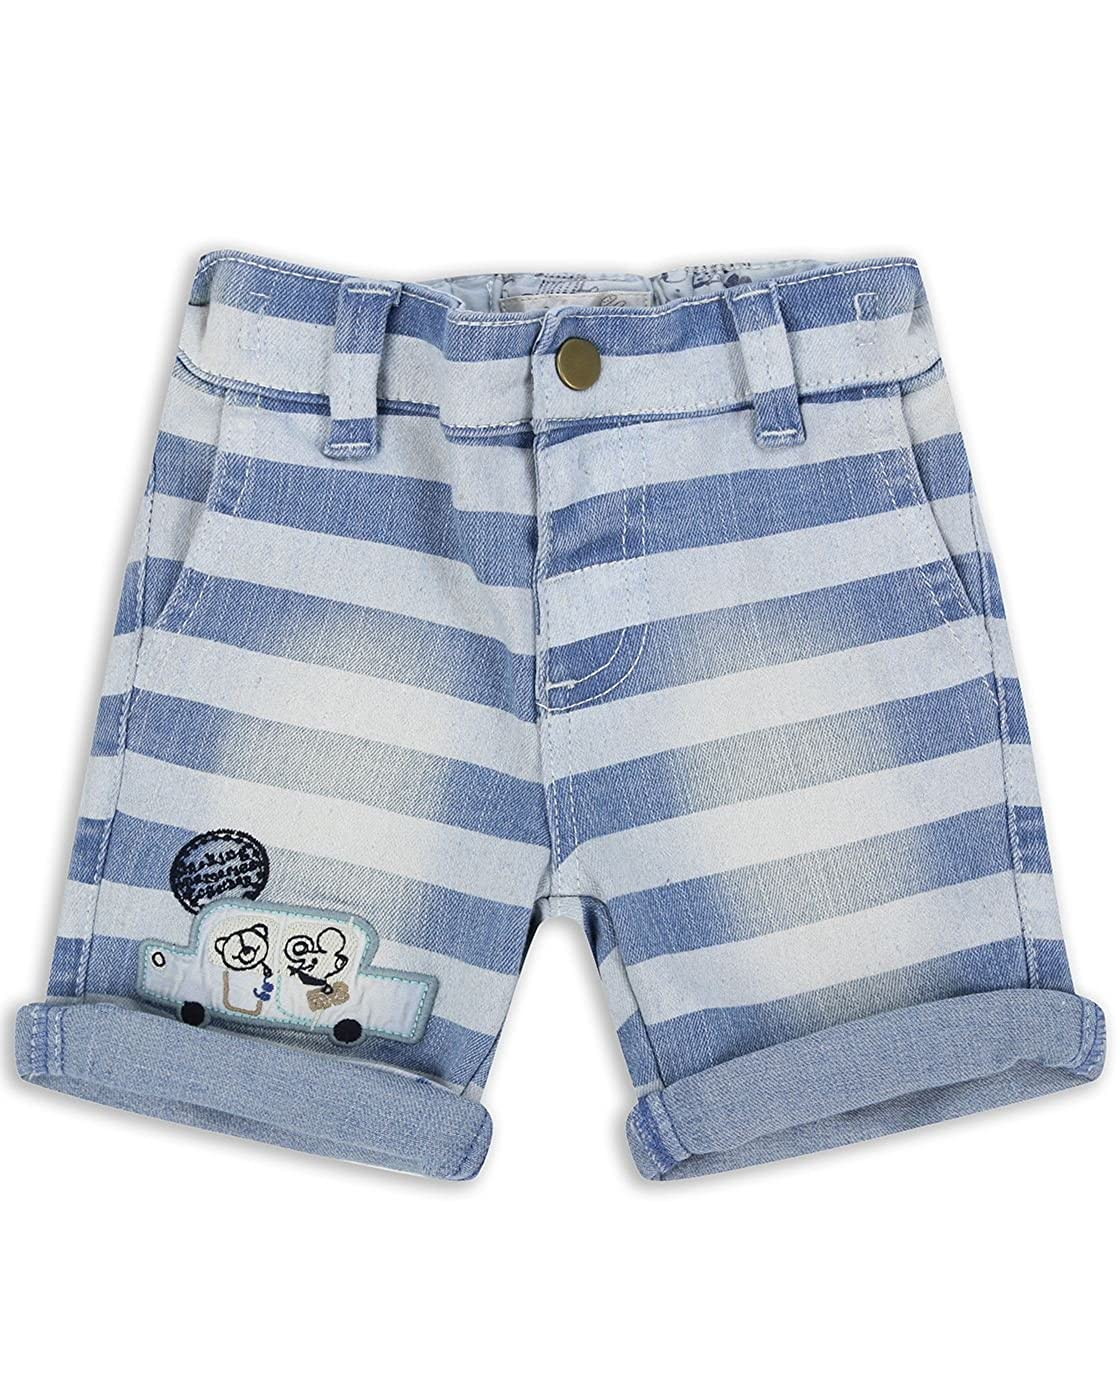 The Essential One Baby Kids Boys - Striped Shorts - Blue - EOT214